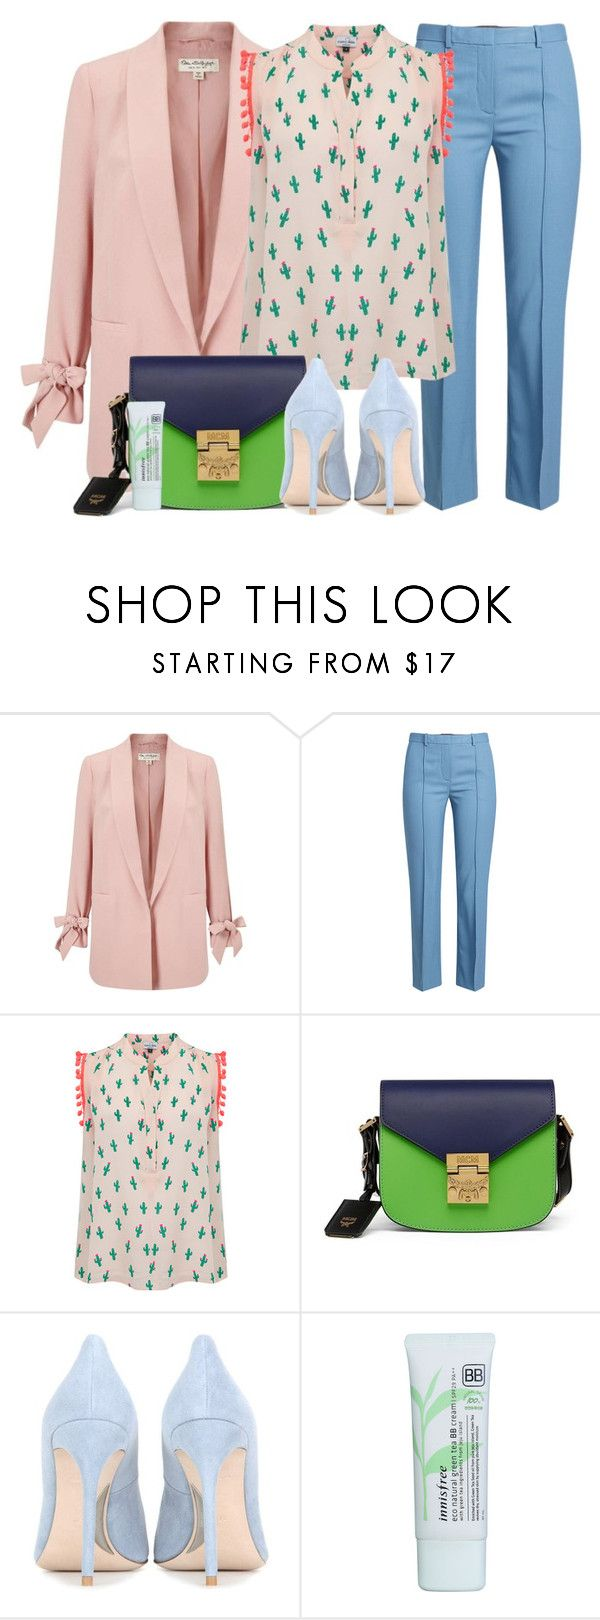 """Spring Fashion #3"" by ella178 ❤ liked on Polyvore featuring Miss Selfridge, Theory, Mercy Delta, MCM, Miu Miu, Innisfree, pastel, springfashion, springlooks and innisfreenaturalbbcream"